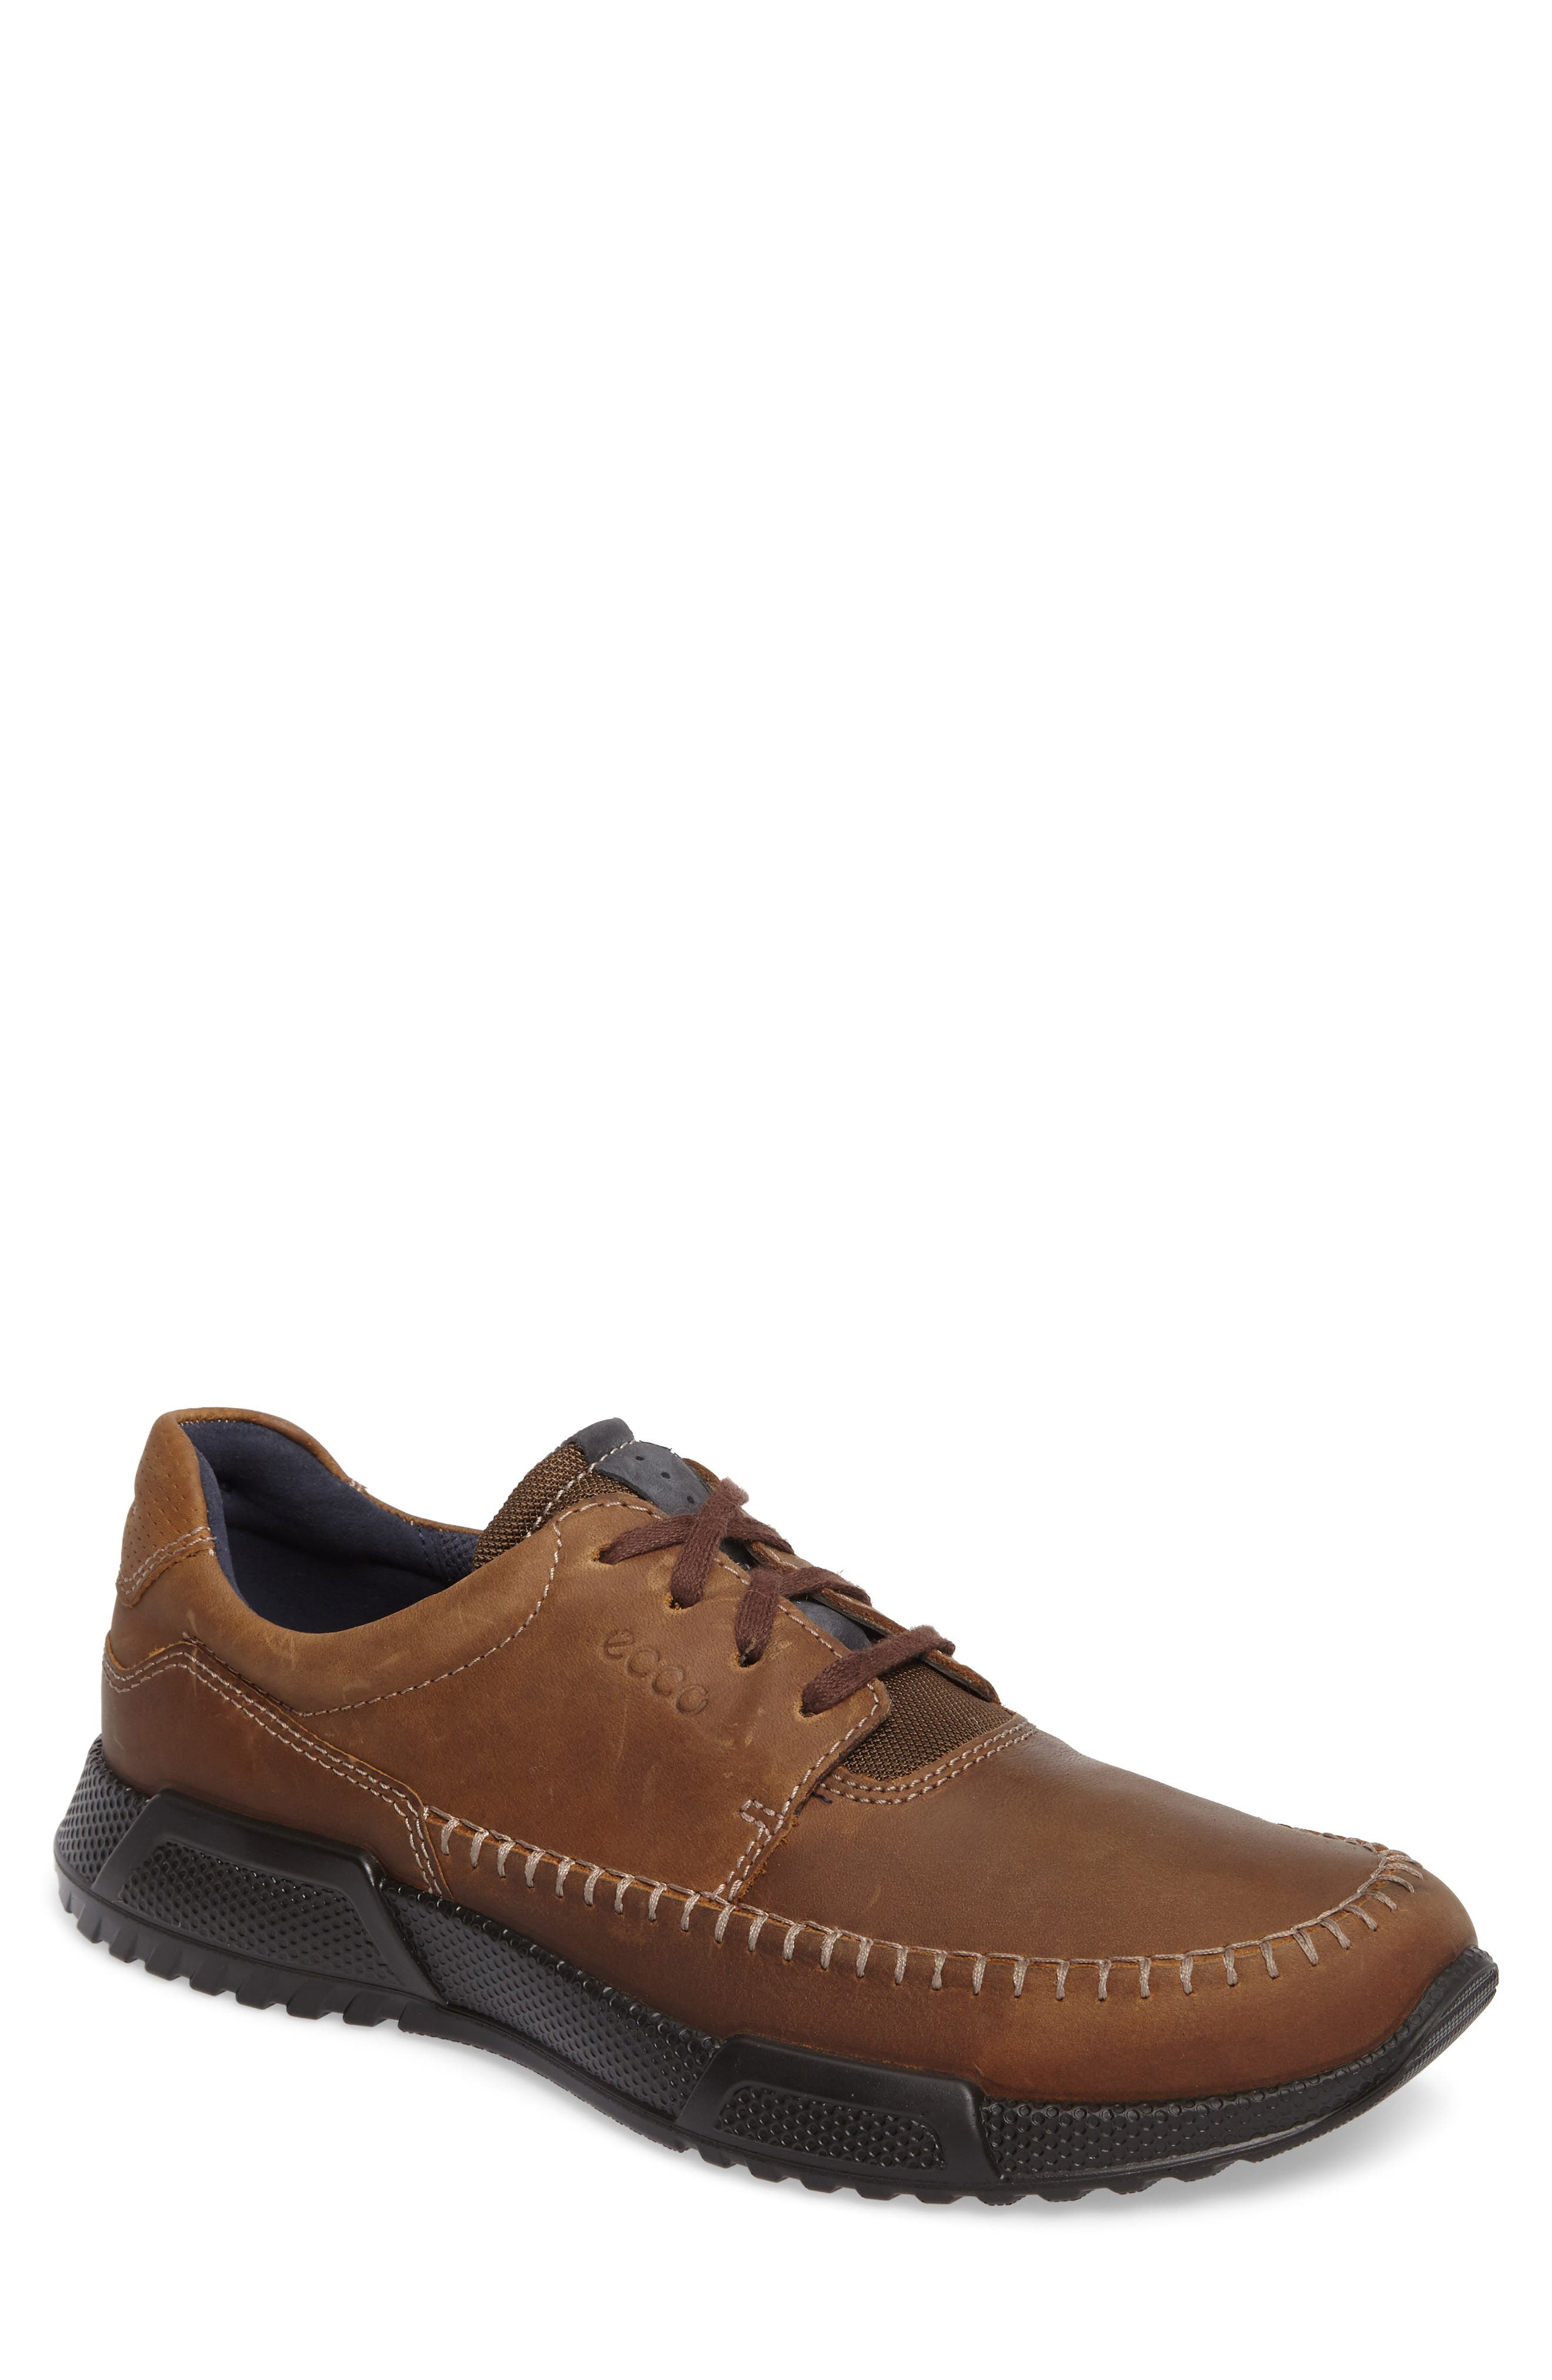 Luca Moc Toe Oxford,                             Main thumbnail 1, color,                             Camel/ Marine Nubuck